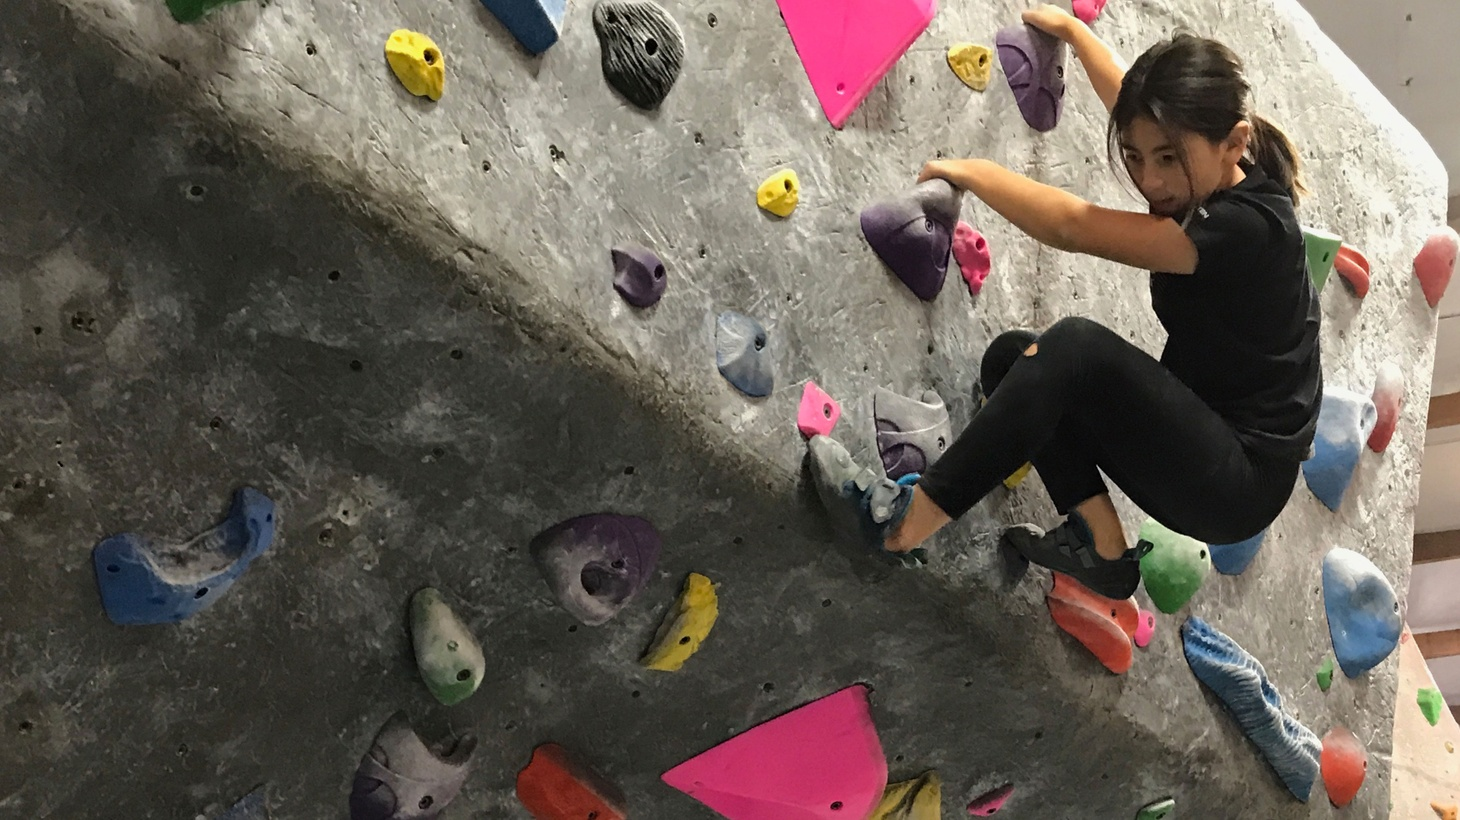 Audrey Sachs has been climbing since she was a toddler.